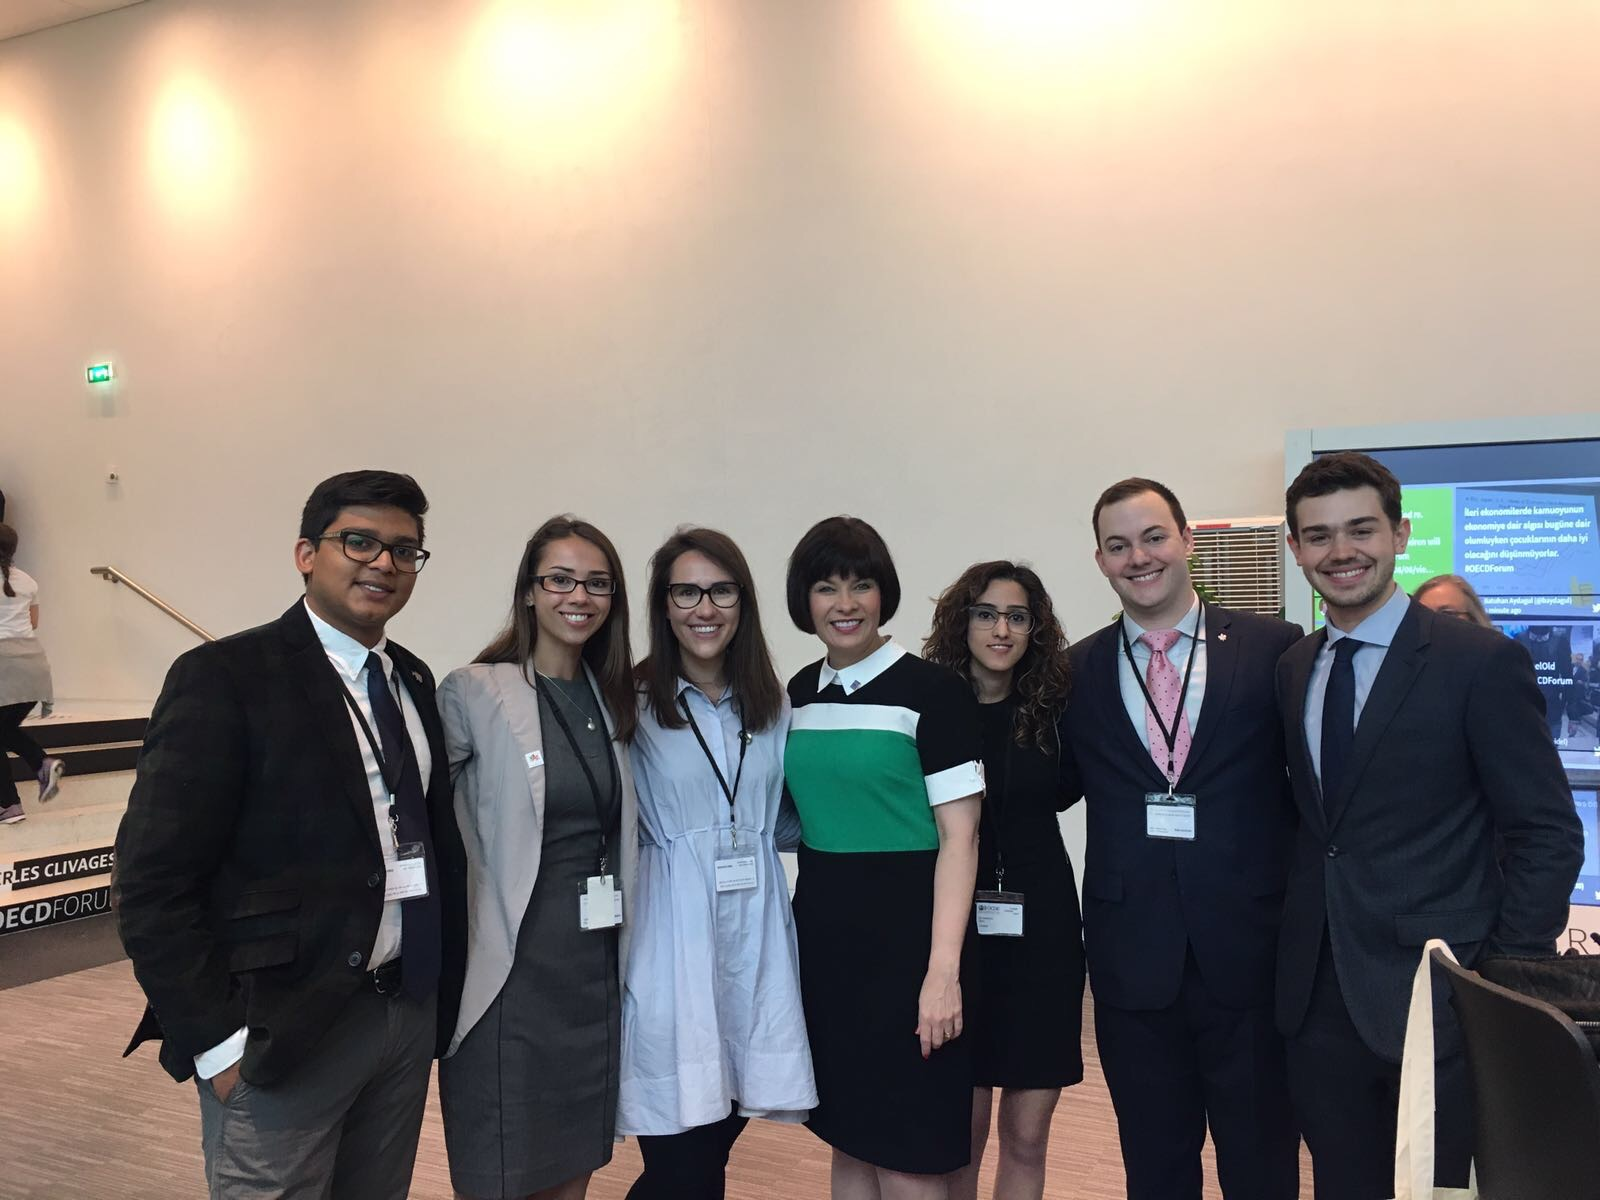 Meeting Ginette Petitpas Taylor, Parliamentary Secretary to Bill Morneau  .jpg